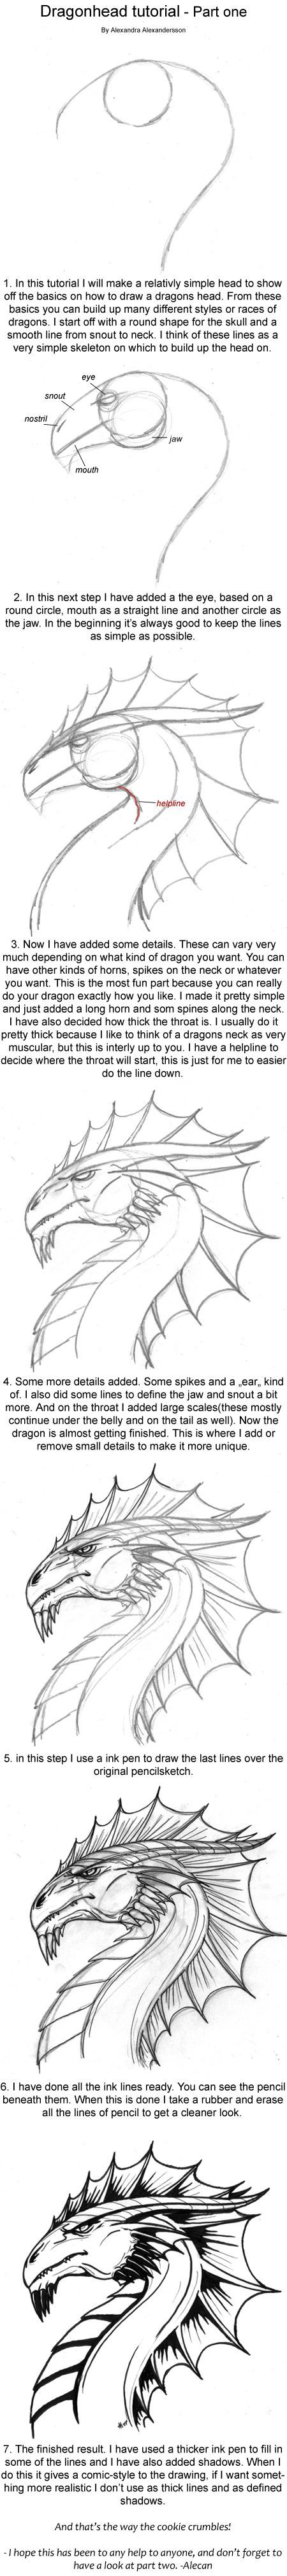 Dragonhead tutorial part one by alecan deviantart com on deviantart